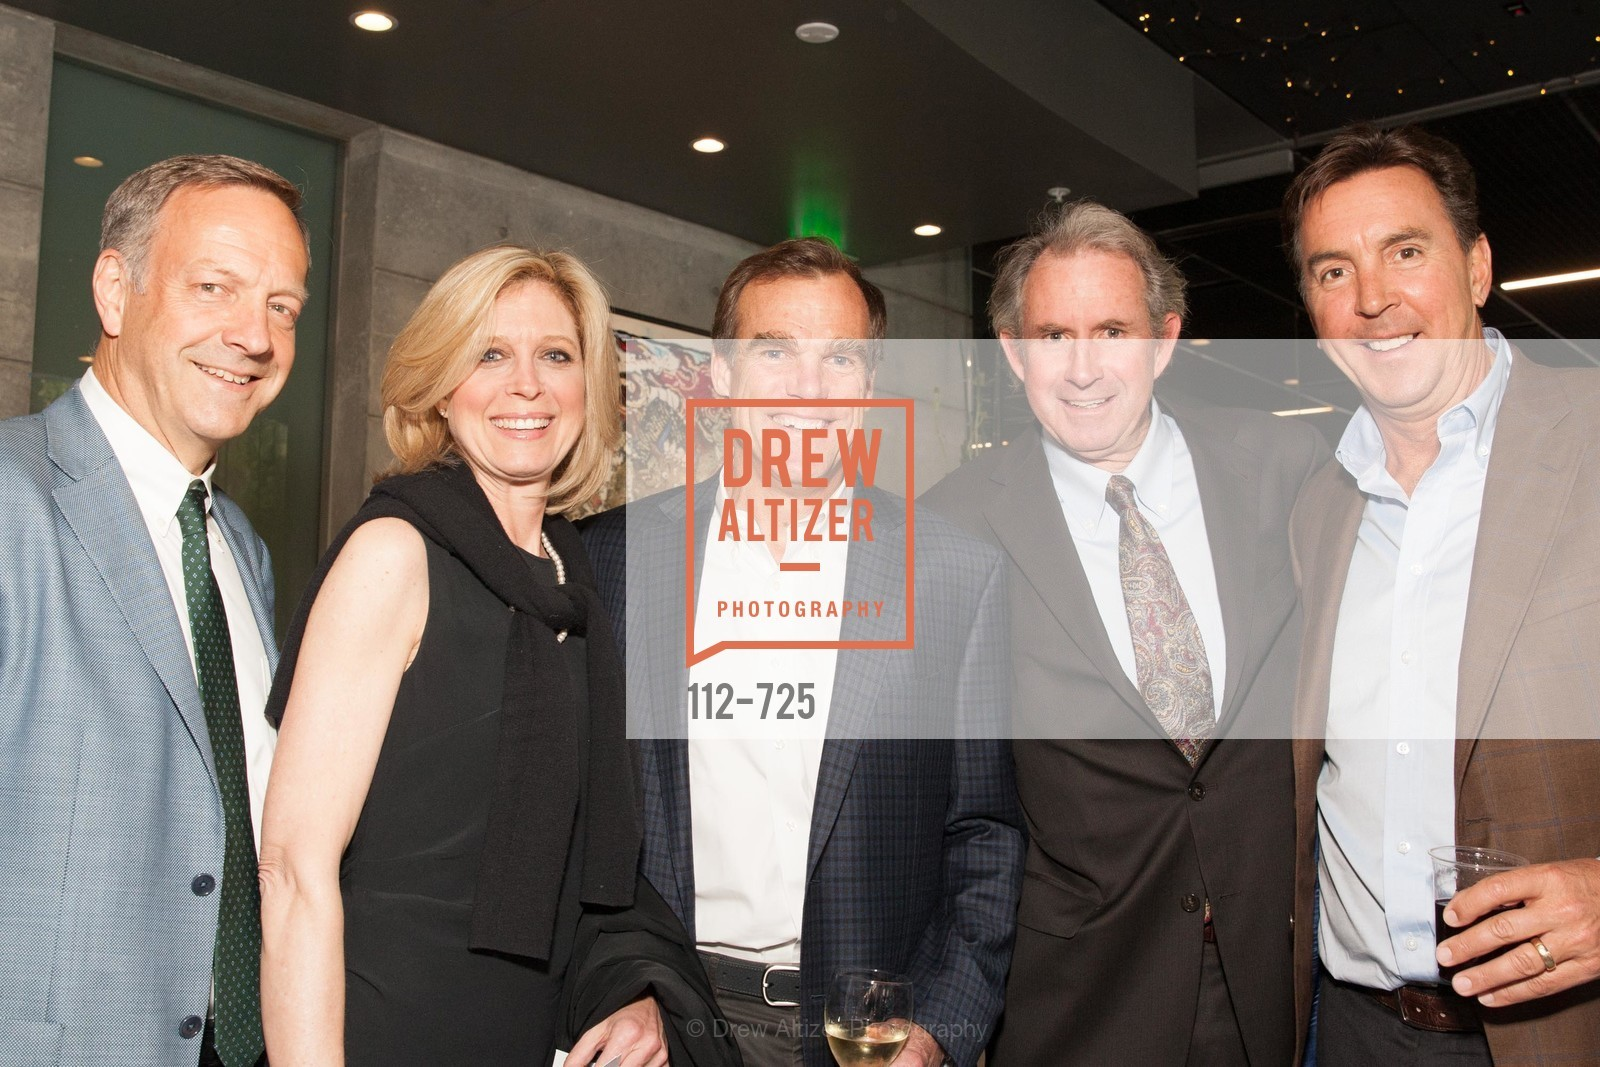 Dick Boyce, Debbie Messemer, Brad Miller, John McMorrow, Will Evers, COMMON SENSE Media Awards 2015, US, May 14th, 2015,Drew Altizer, Drew Altizer Photography, full-service agency, private events, San Francisco photographer, photographer california